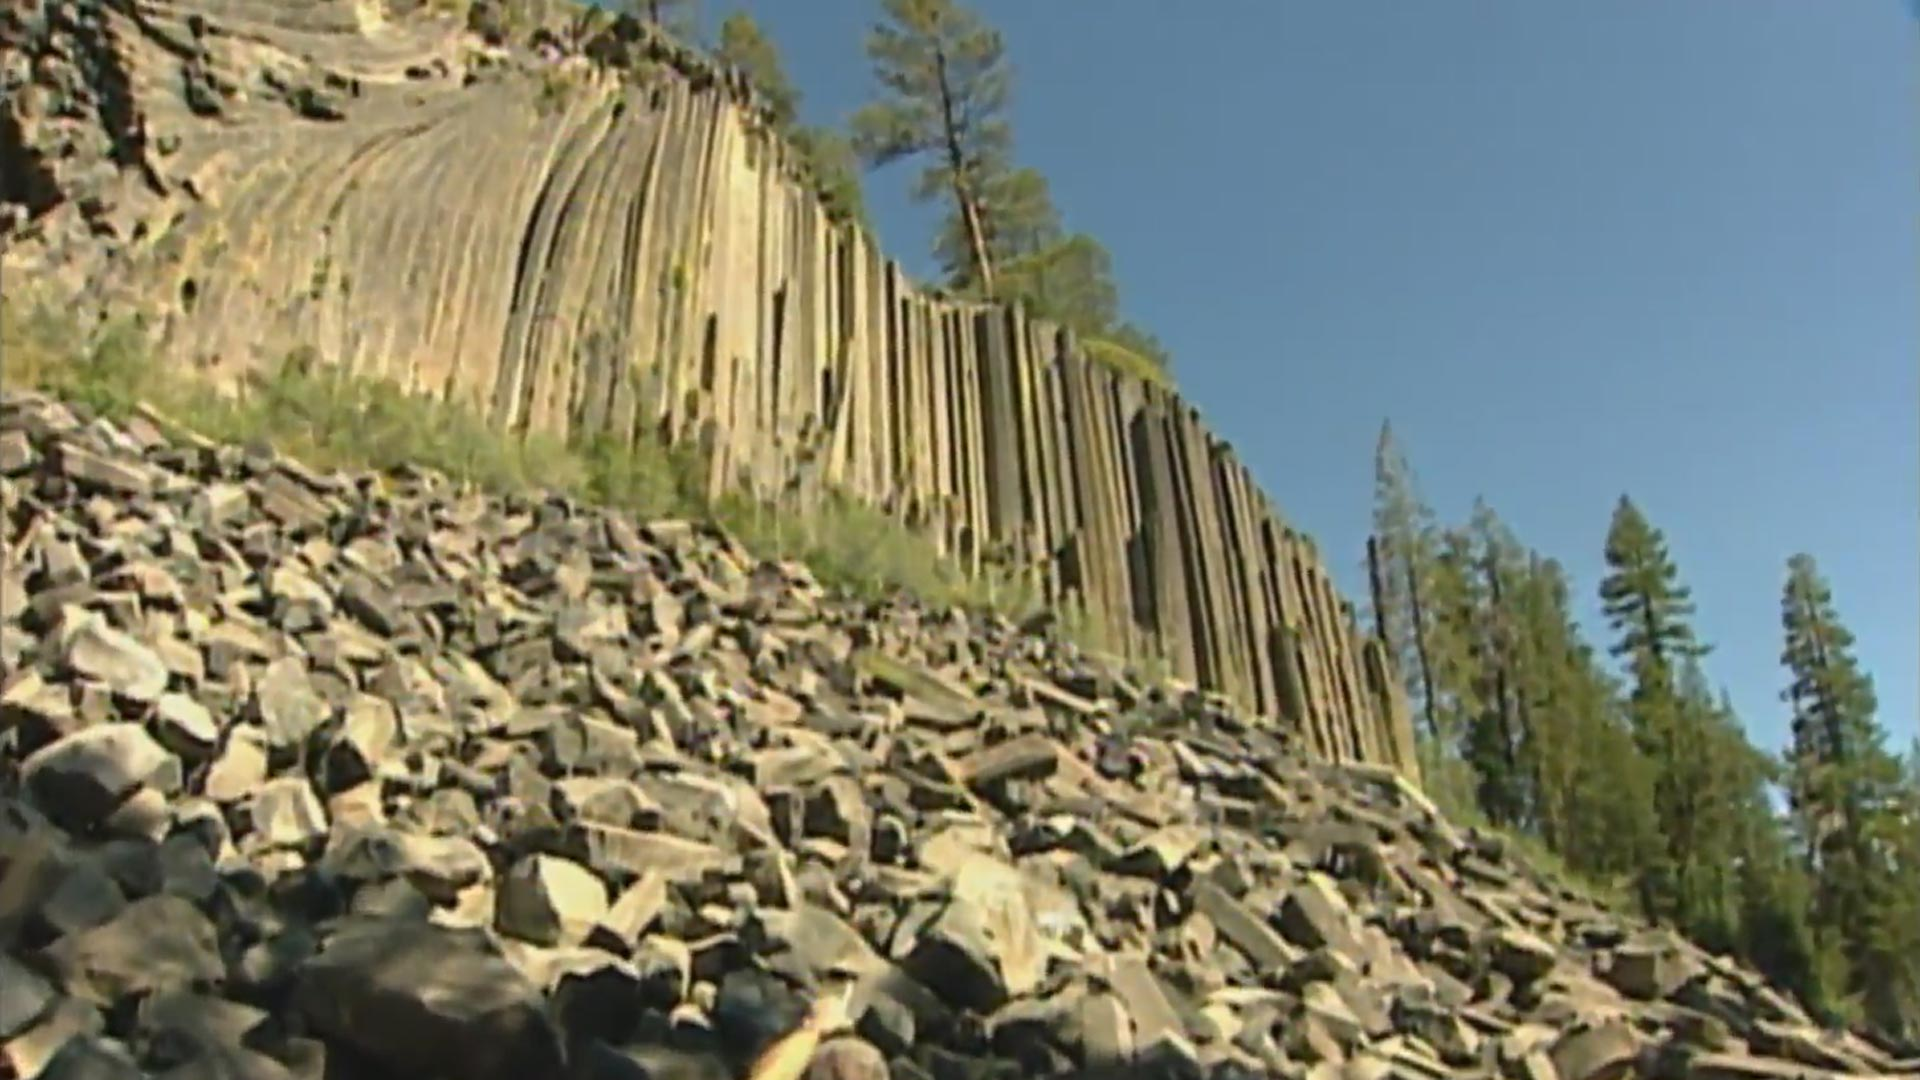 California's Gold: Devils Postpile